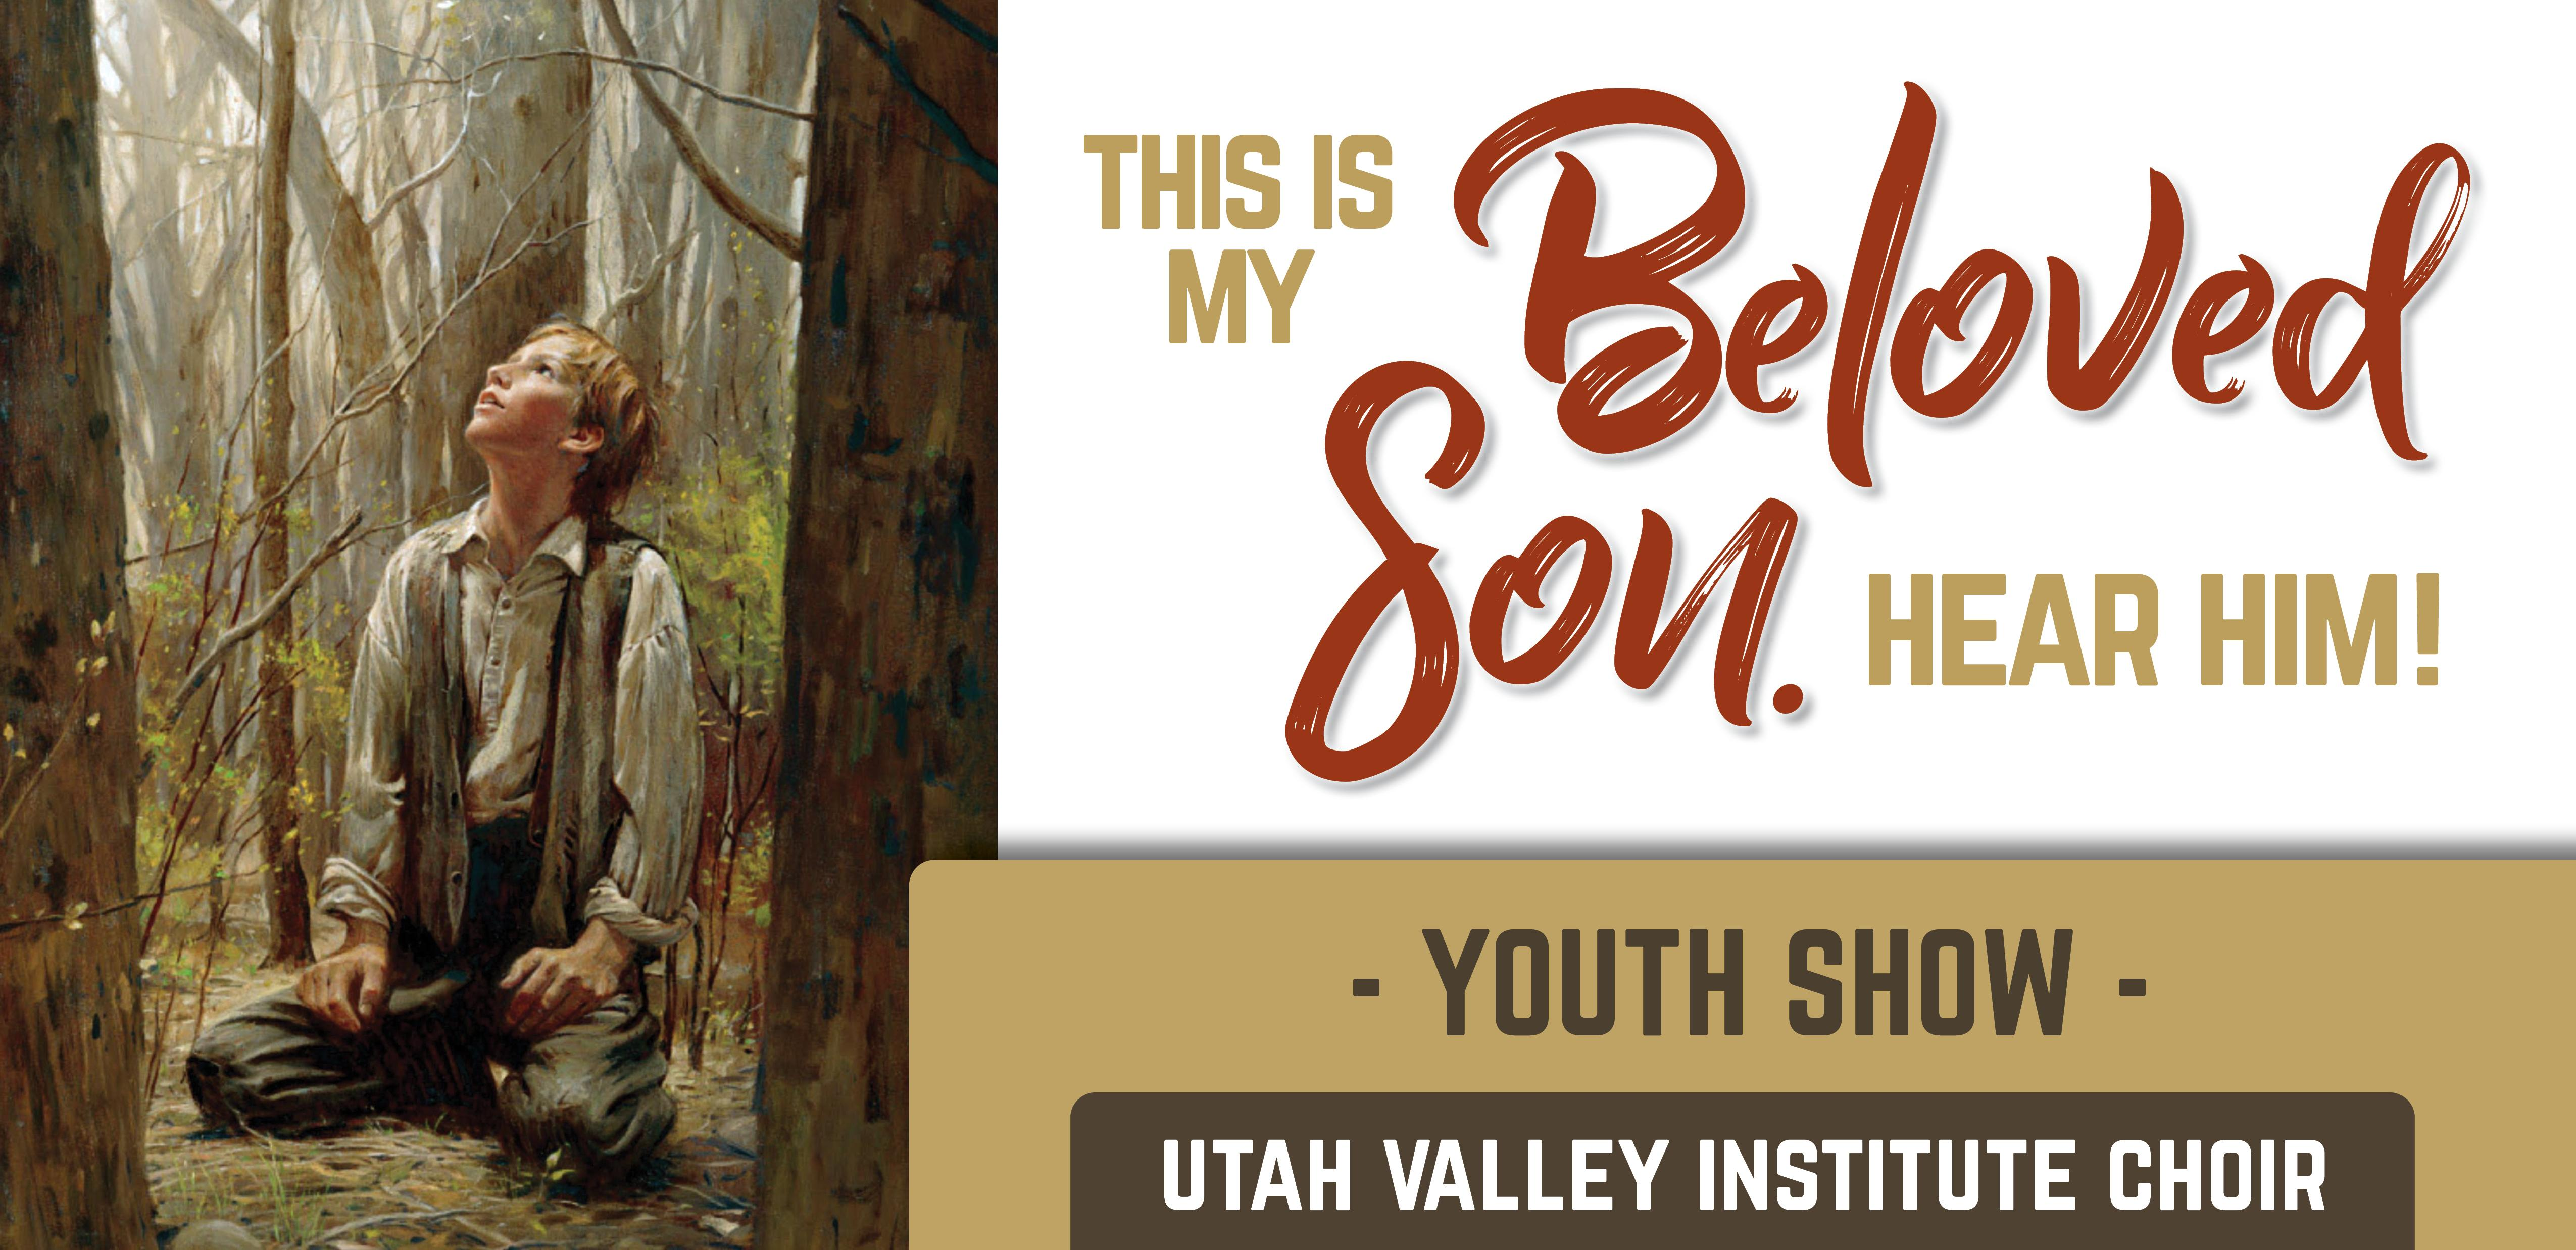 Utah Valley Institute: Youth Choir Show This is My Beloved Son. Hear Him!